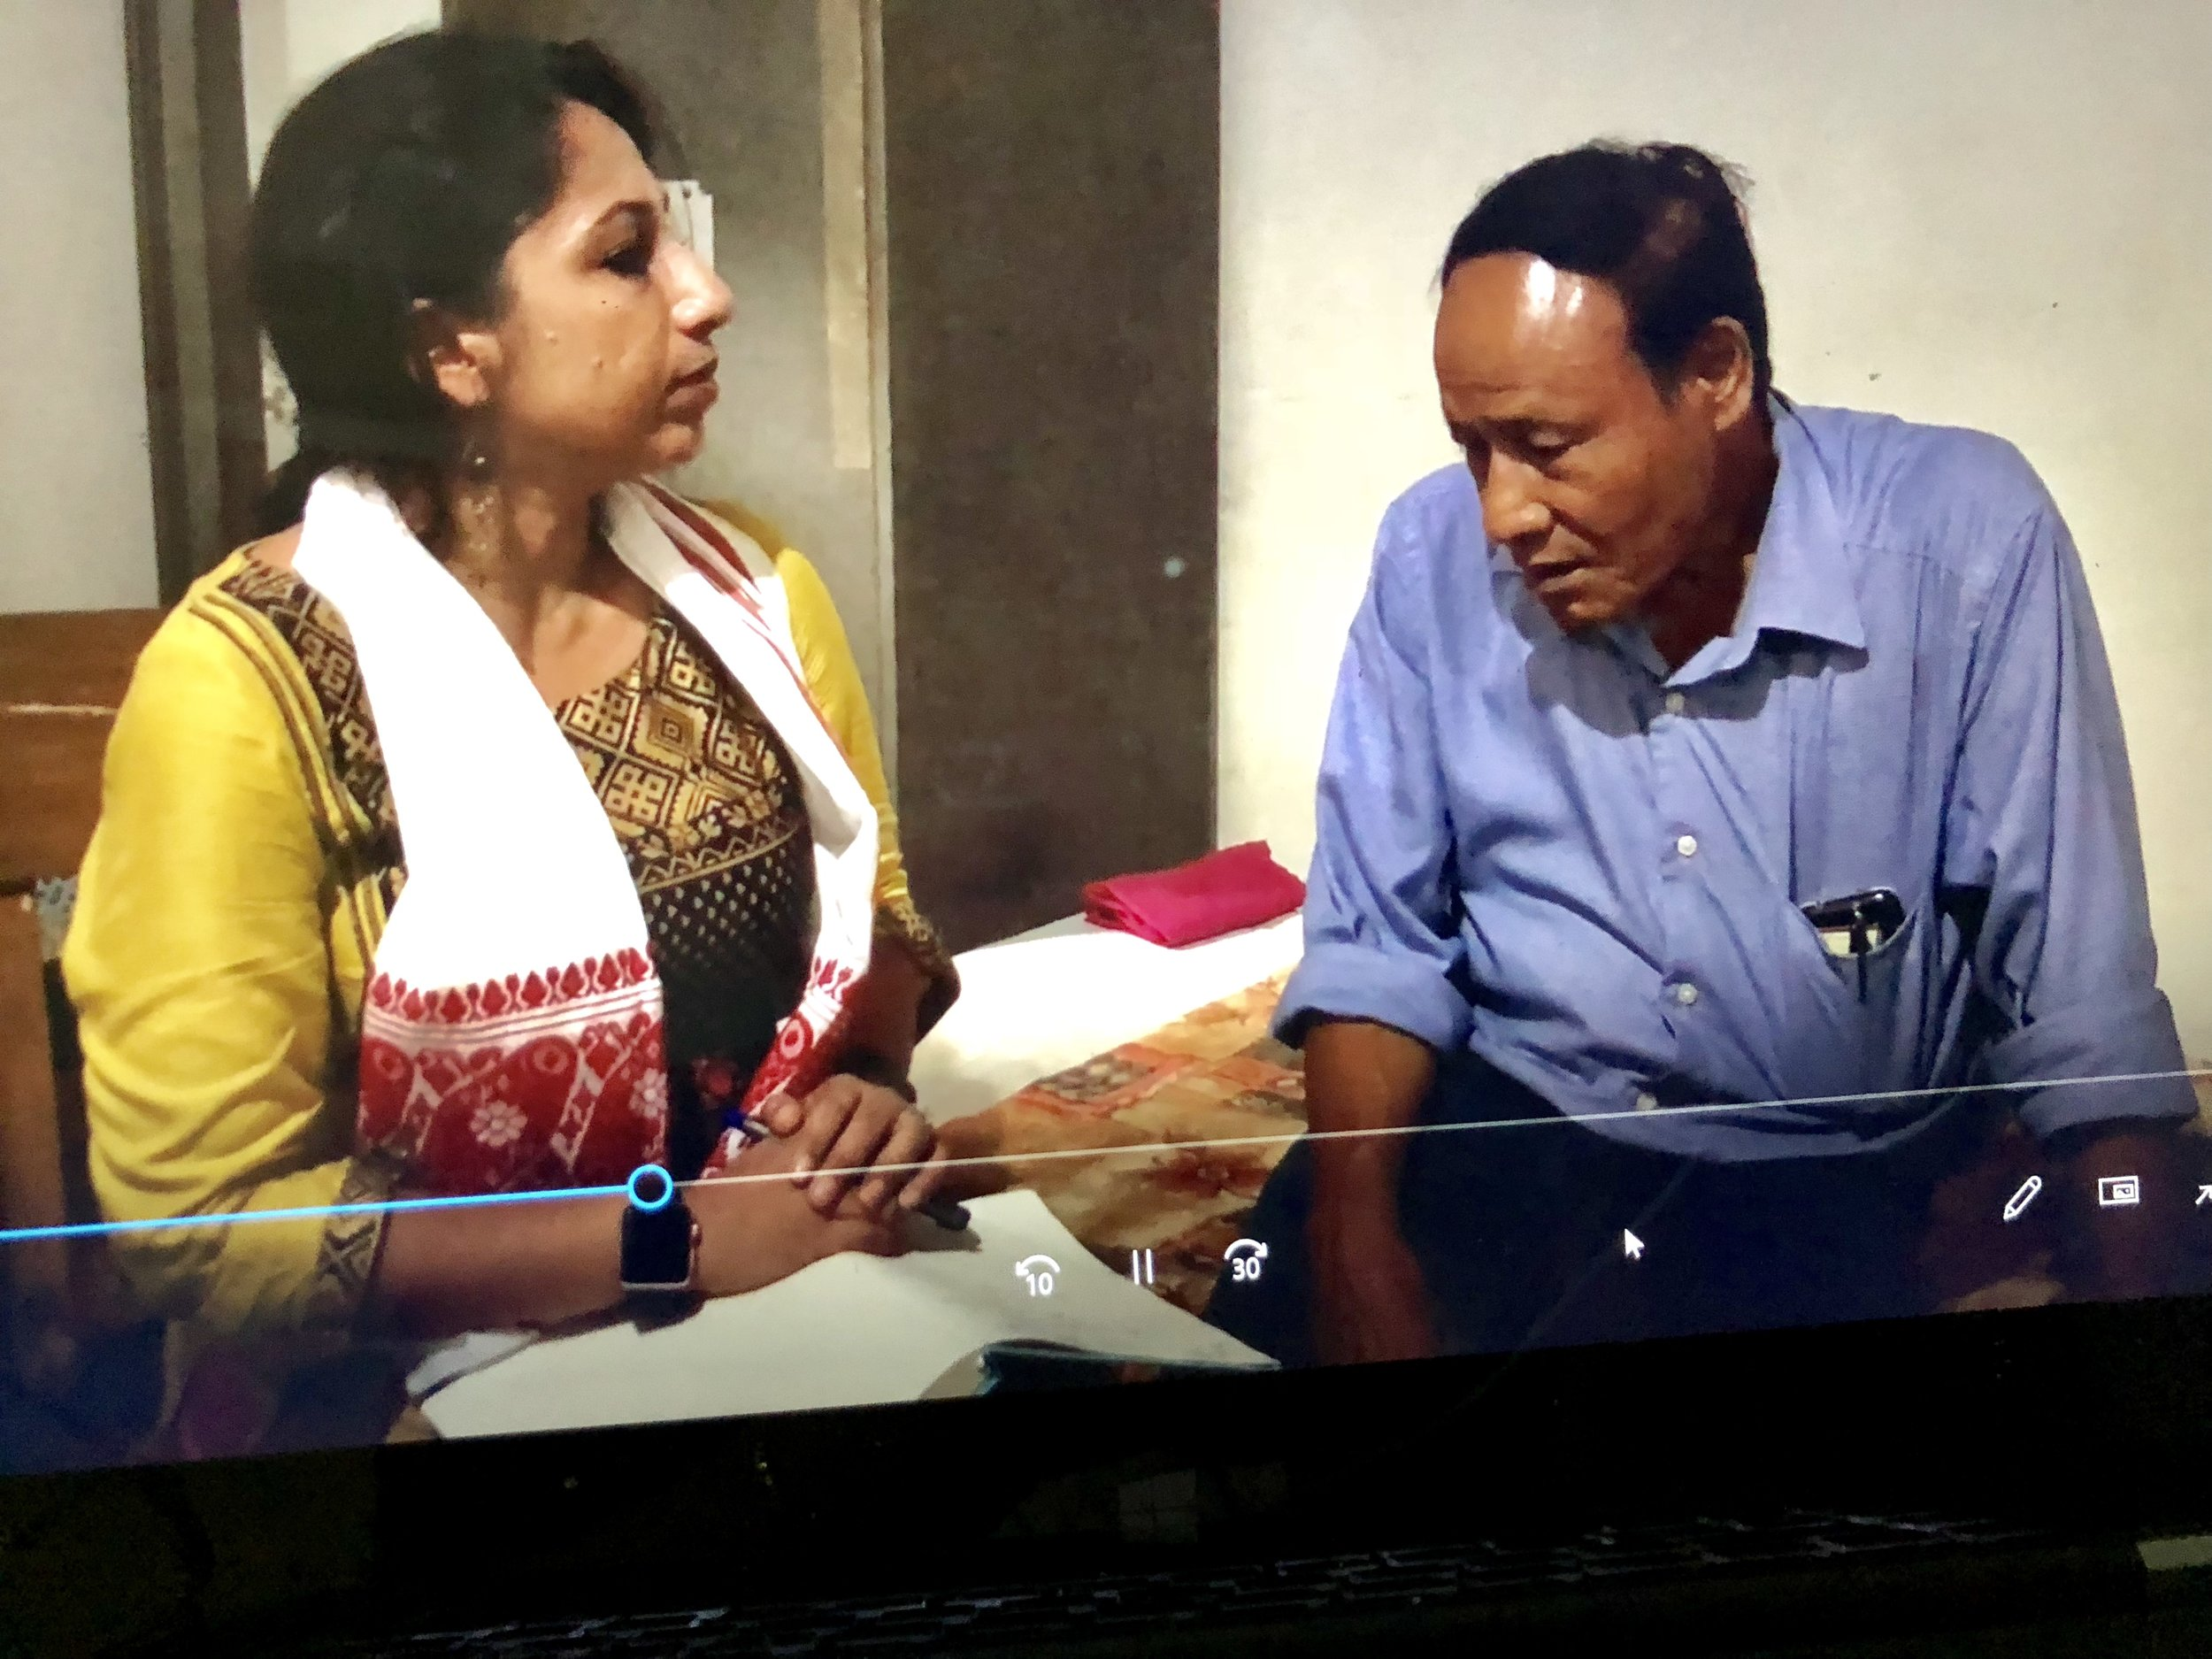 Interview in Assamese with Dr. Leeladhar Deori, Nagaon Hospital. Dr Deori speaks about his experiences and women coming to him mostly at the last stage, becasue they are shy to speak about their Breast health!